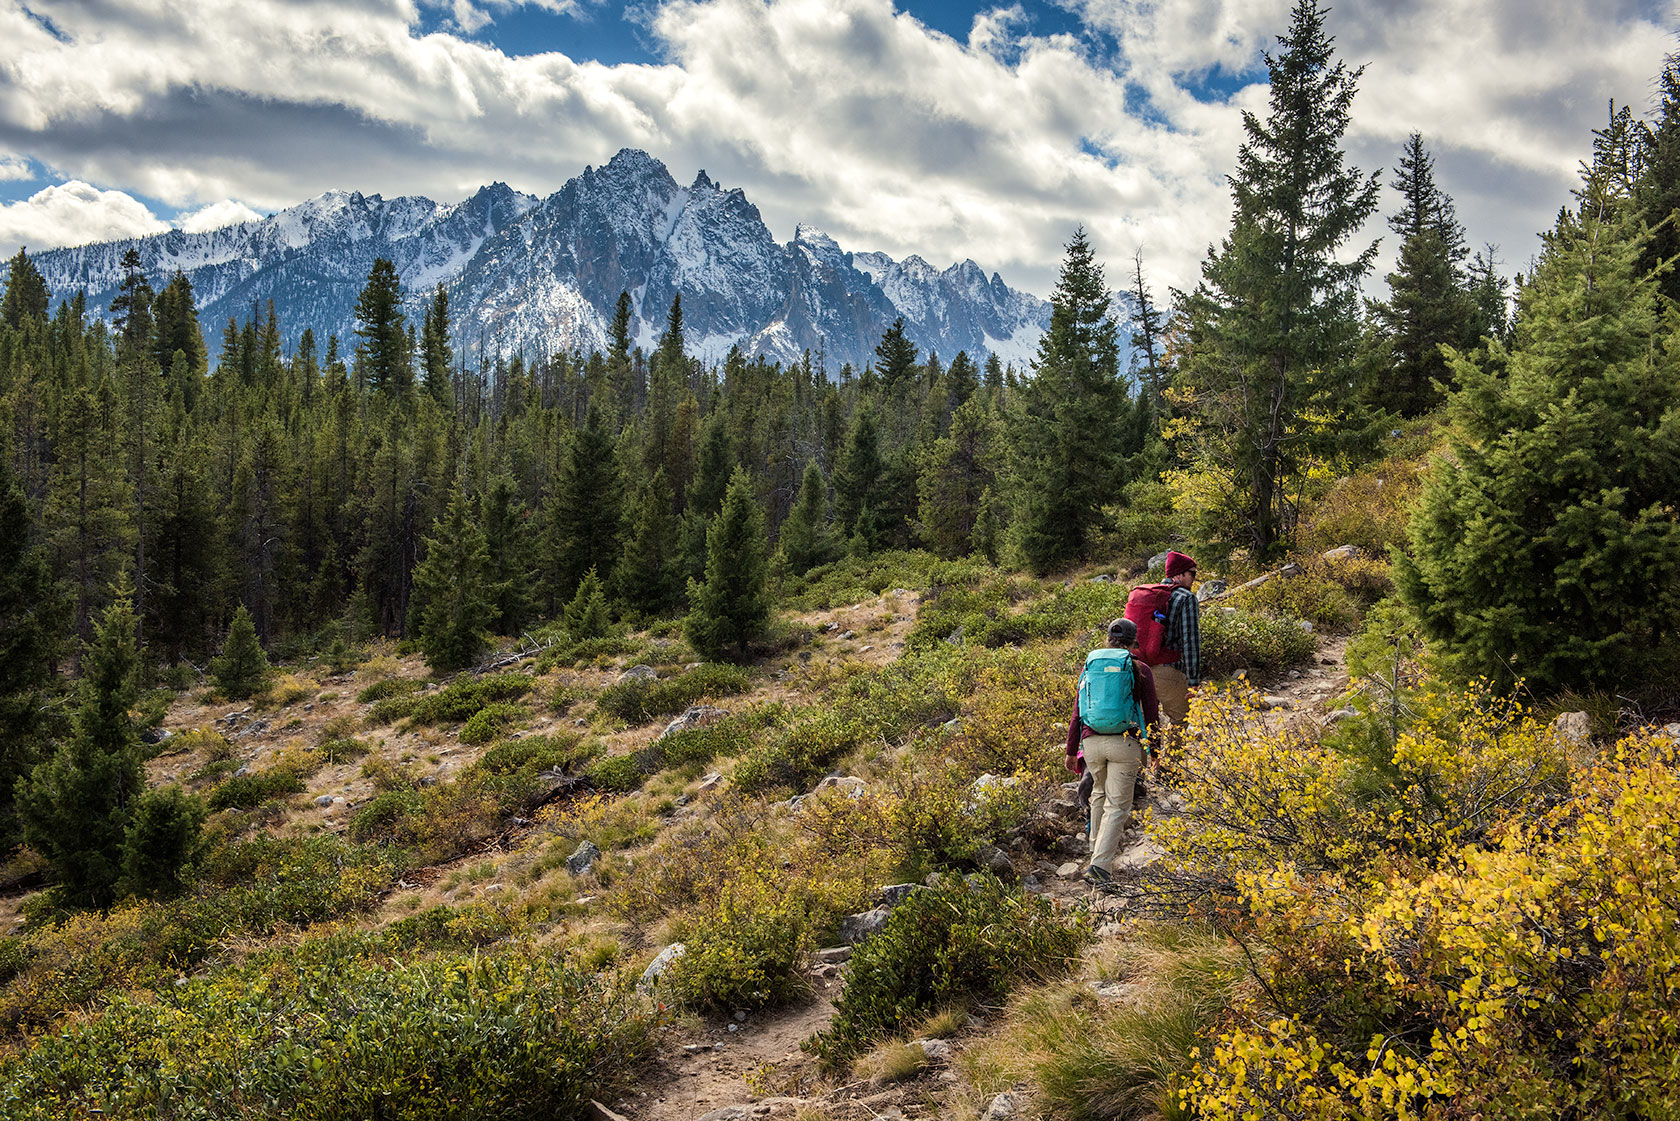 austin-trigg-patagonia-sawtooth-hiking-advenure-wilderness-forest-idaho-outside-lifestyle-day-fall-weather-mountains-bench-lakes-redfish-meadow.jpg